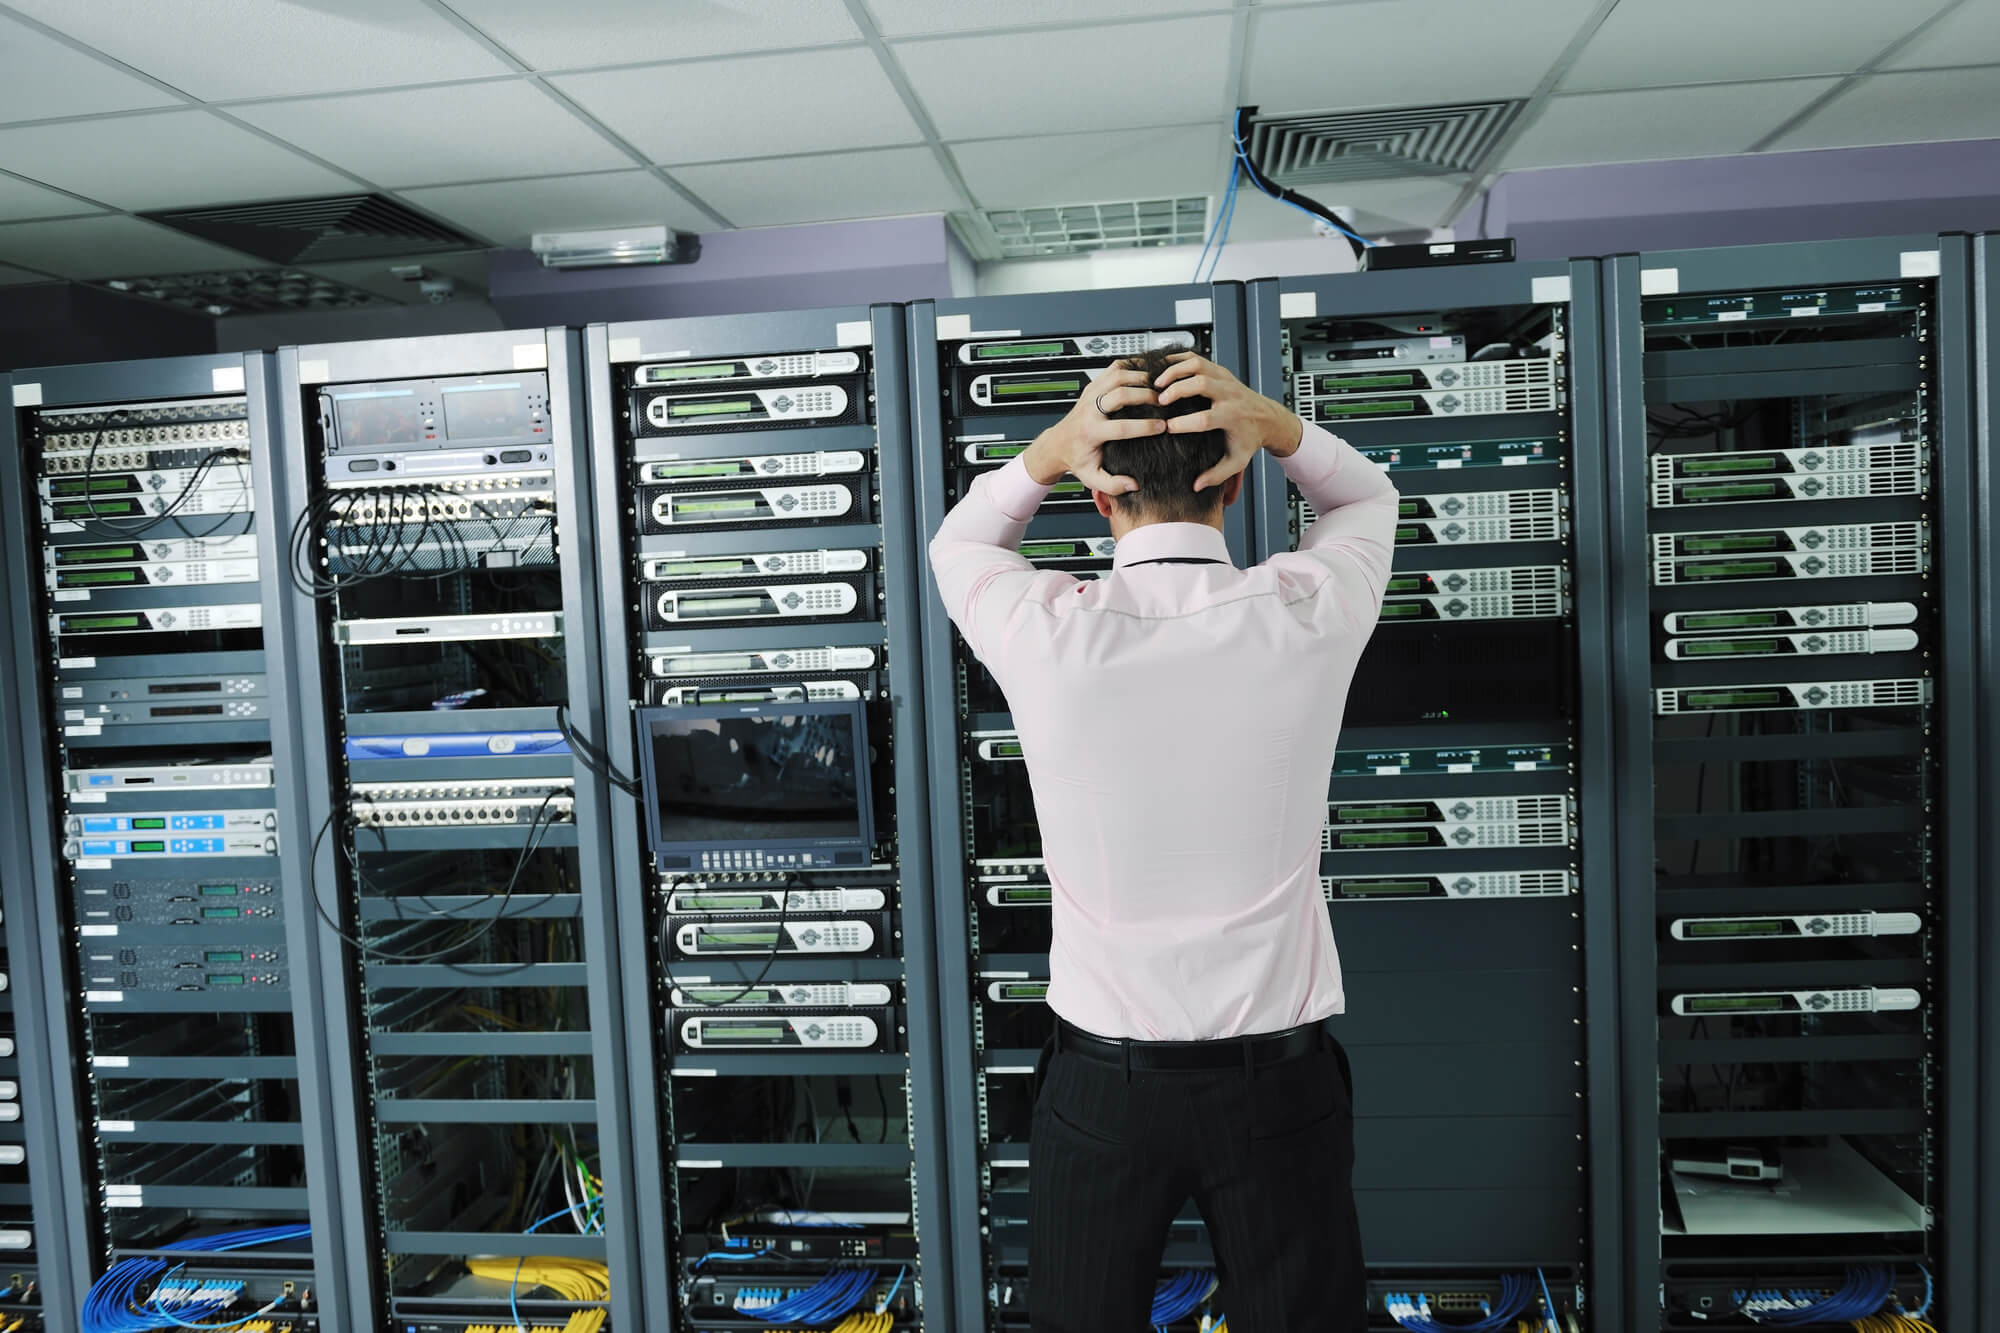 IT networking professional trouble shooting network issues